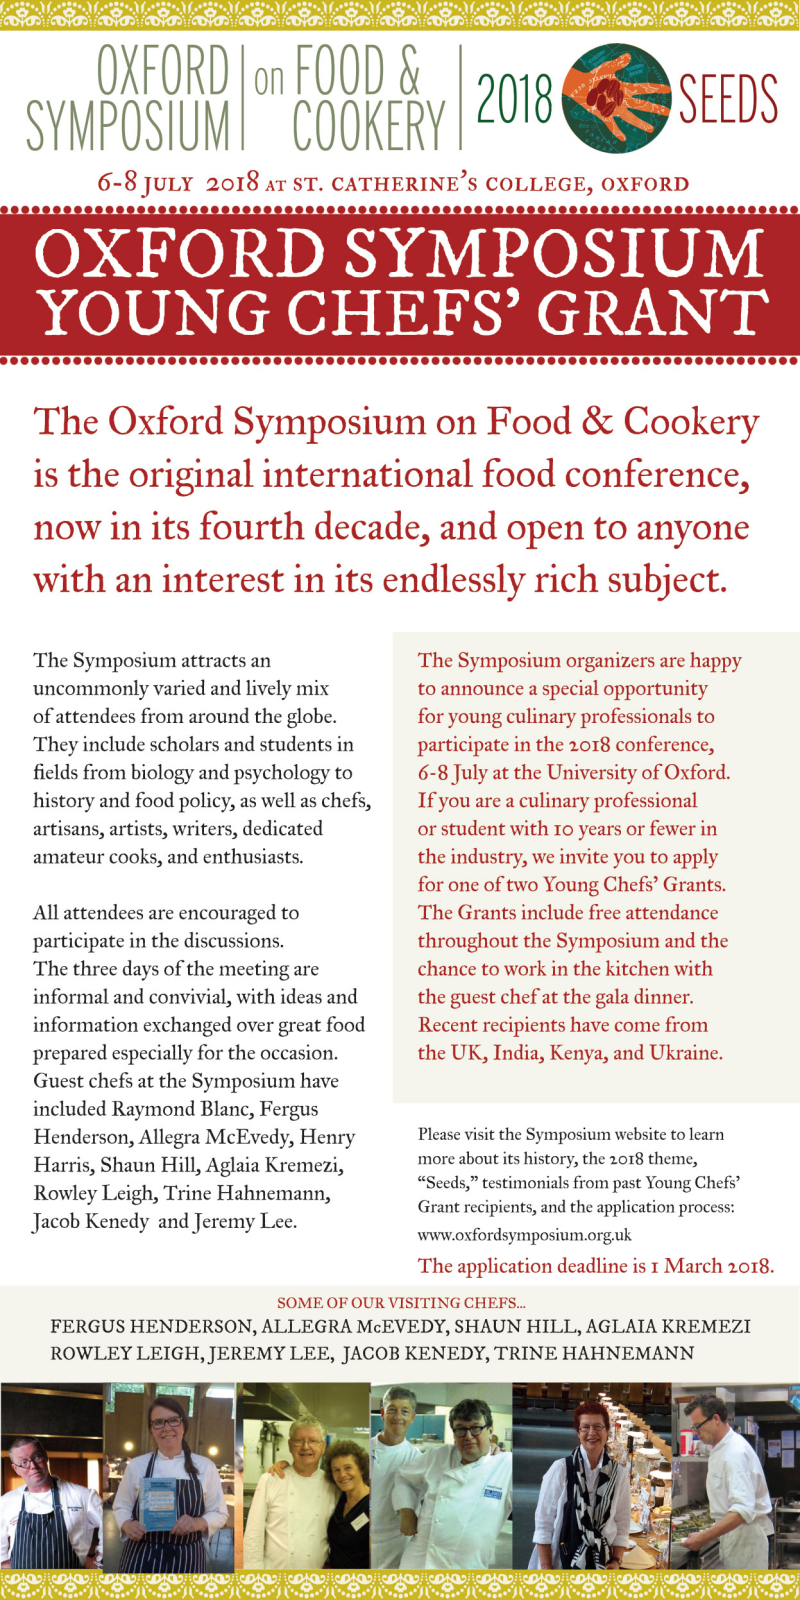 Oxford Symposium Grants 2018